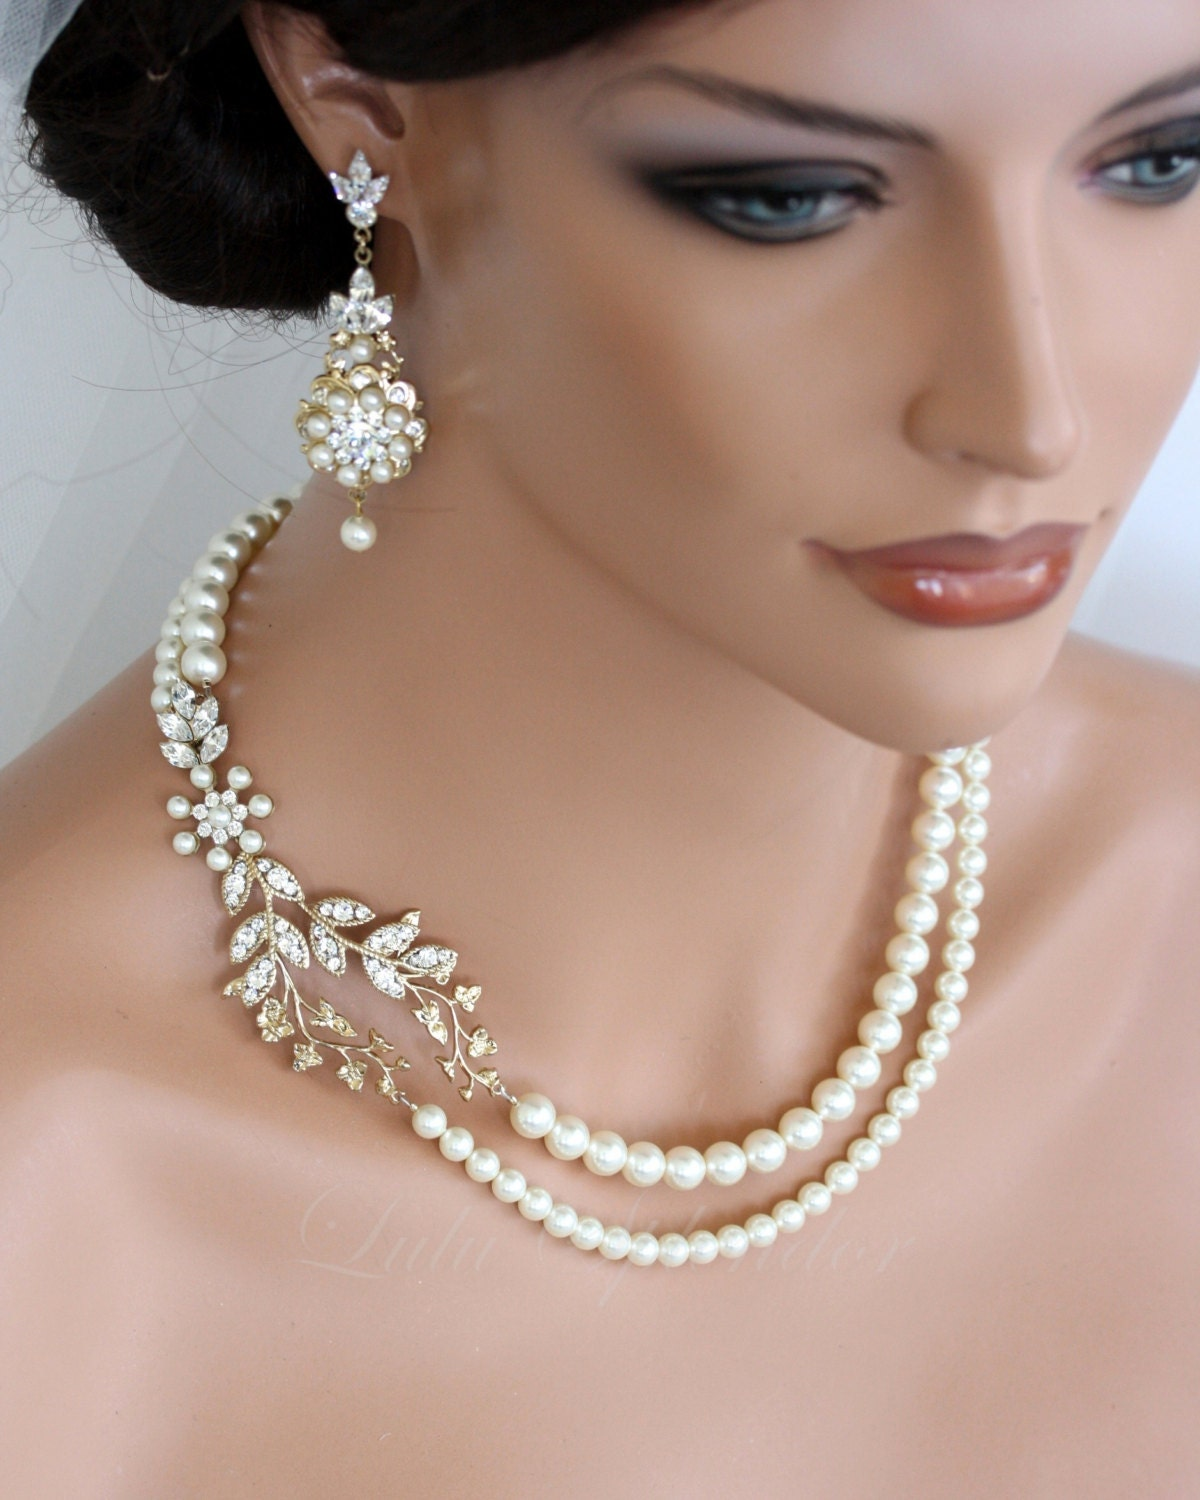 online and in pearls cost oval pure necklace rs designer pendant emerald shiny buy pearl white